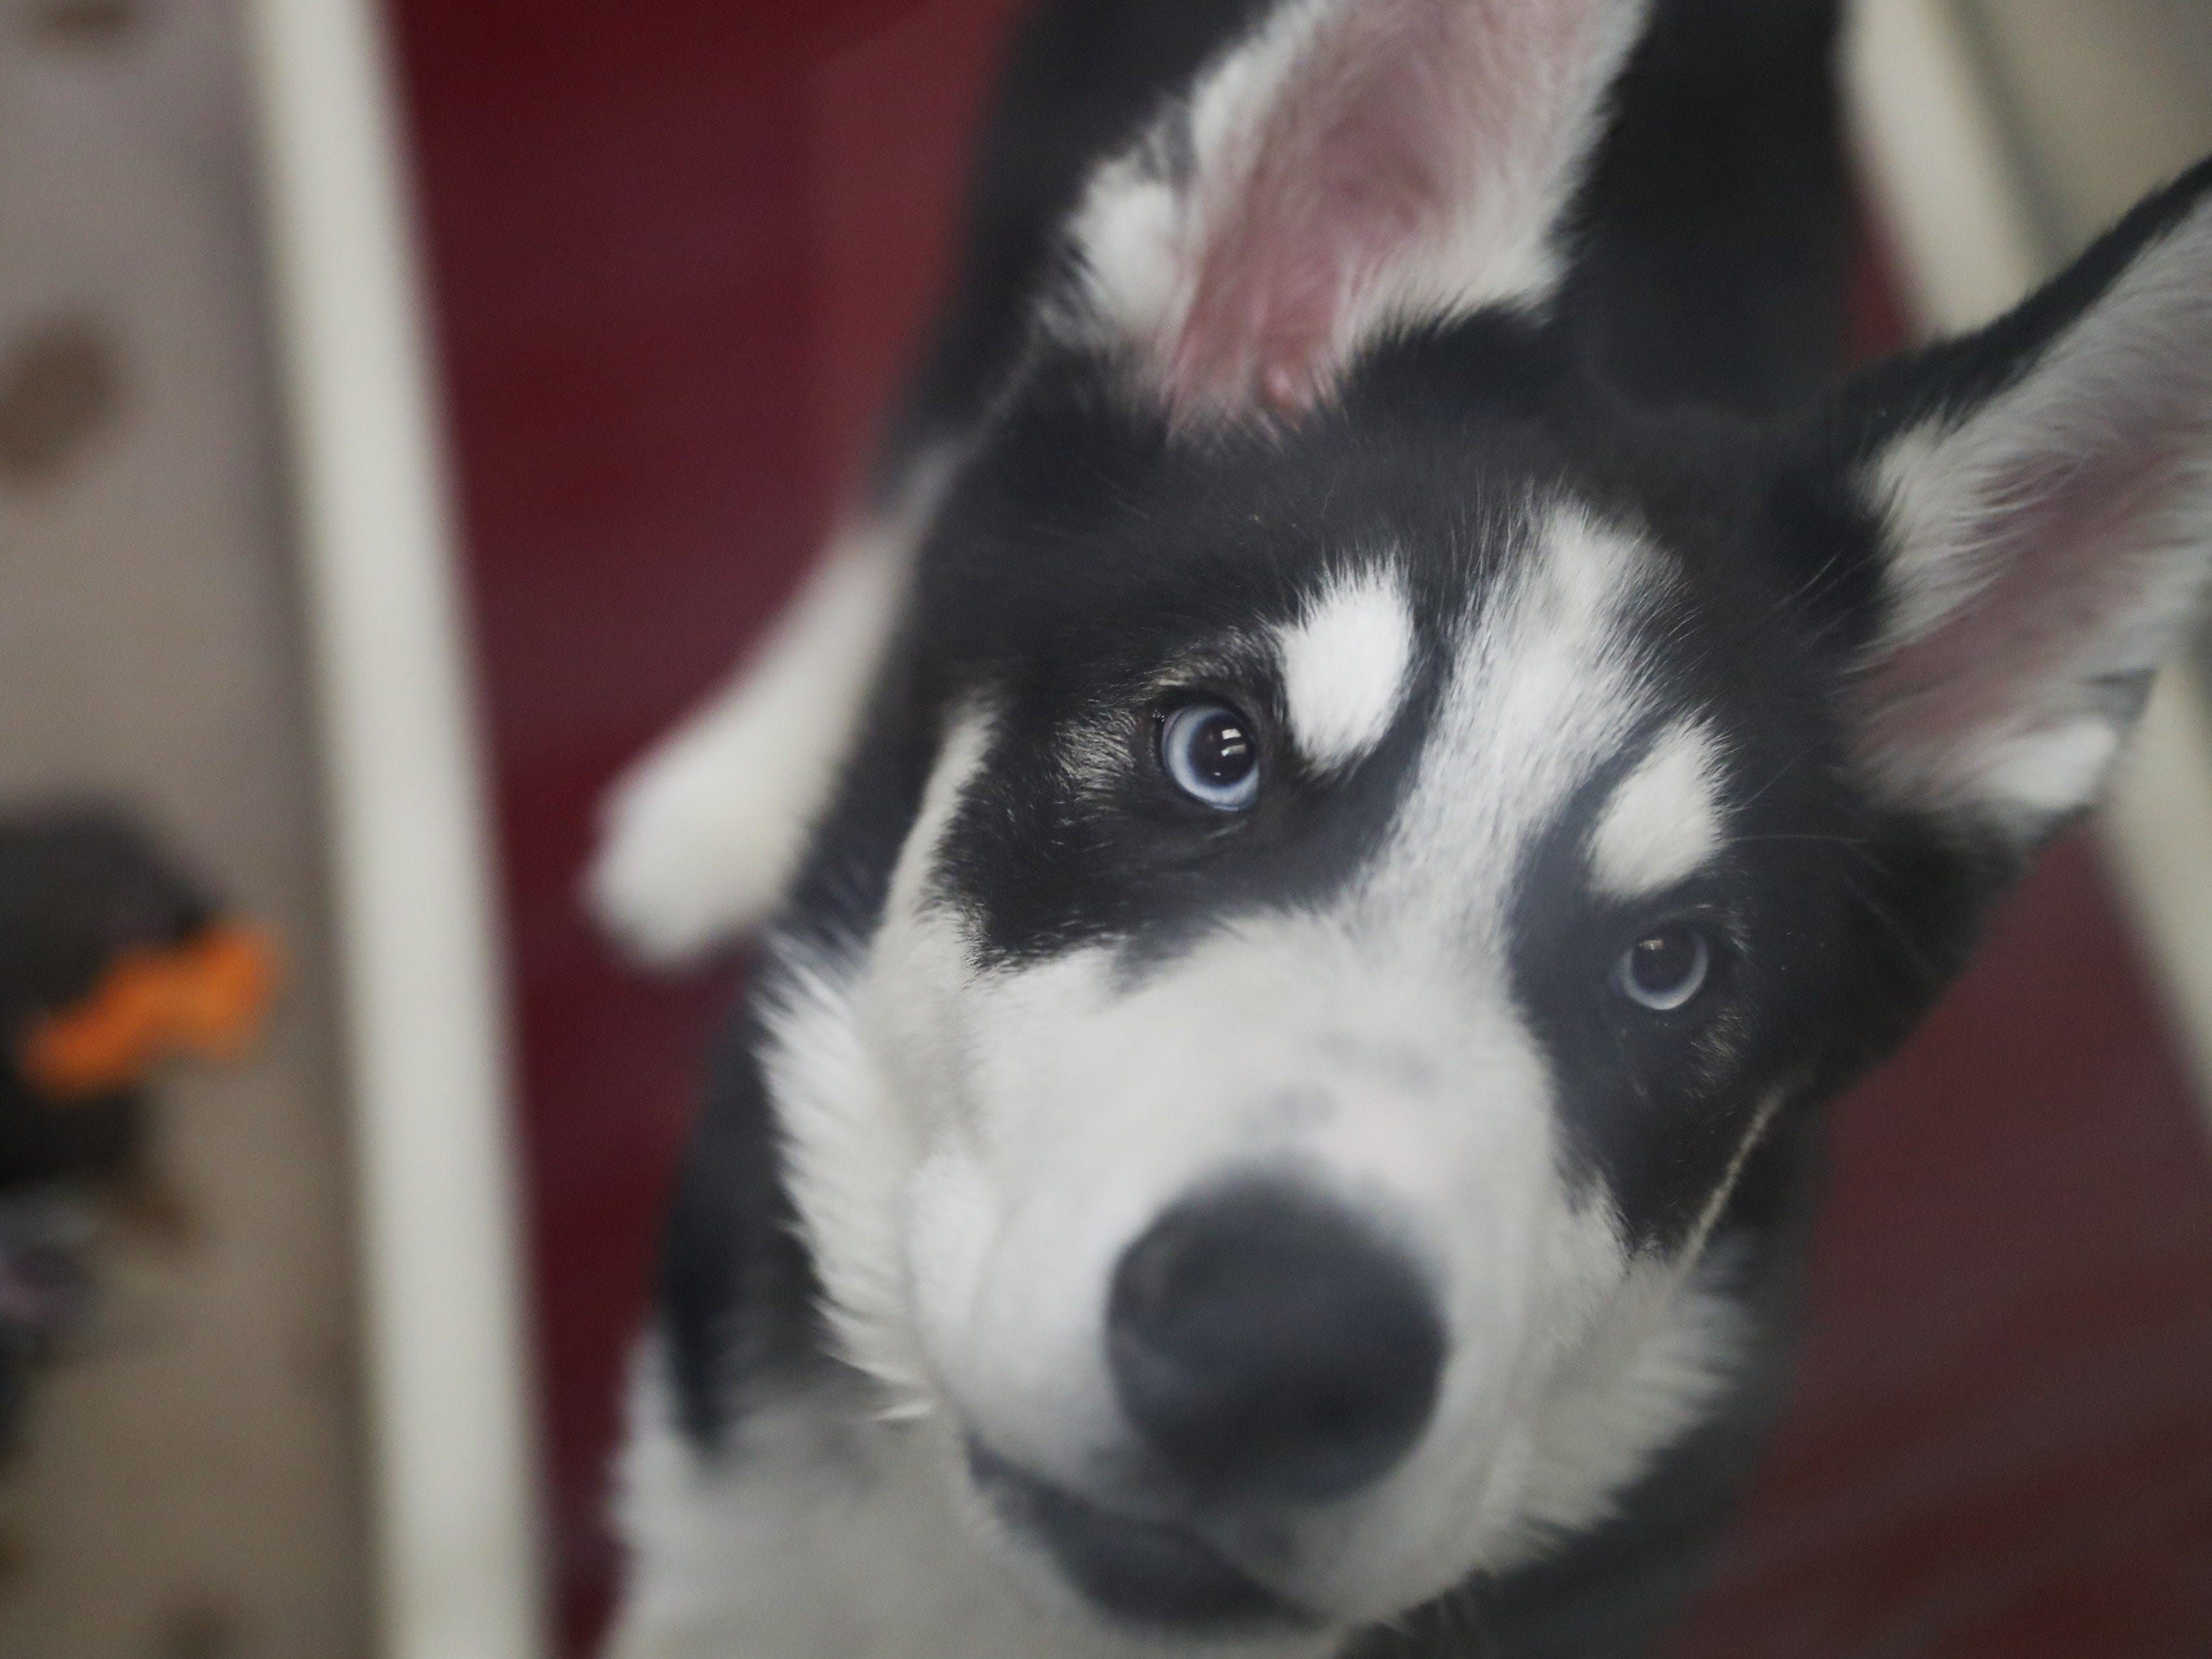 Koda, a 12-week-old Husky, will soon be ready for adoption at the Arizona Humane Society in Phoenix on April 1, 2019. More than 8,000 dogs and cats have been surrendered in Maricopa County since the start of the year.